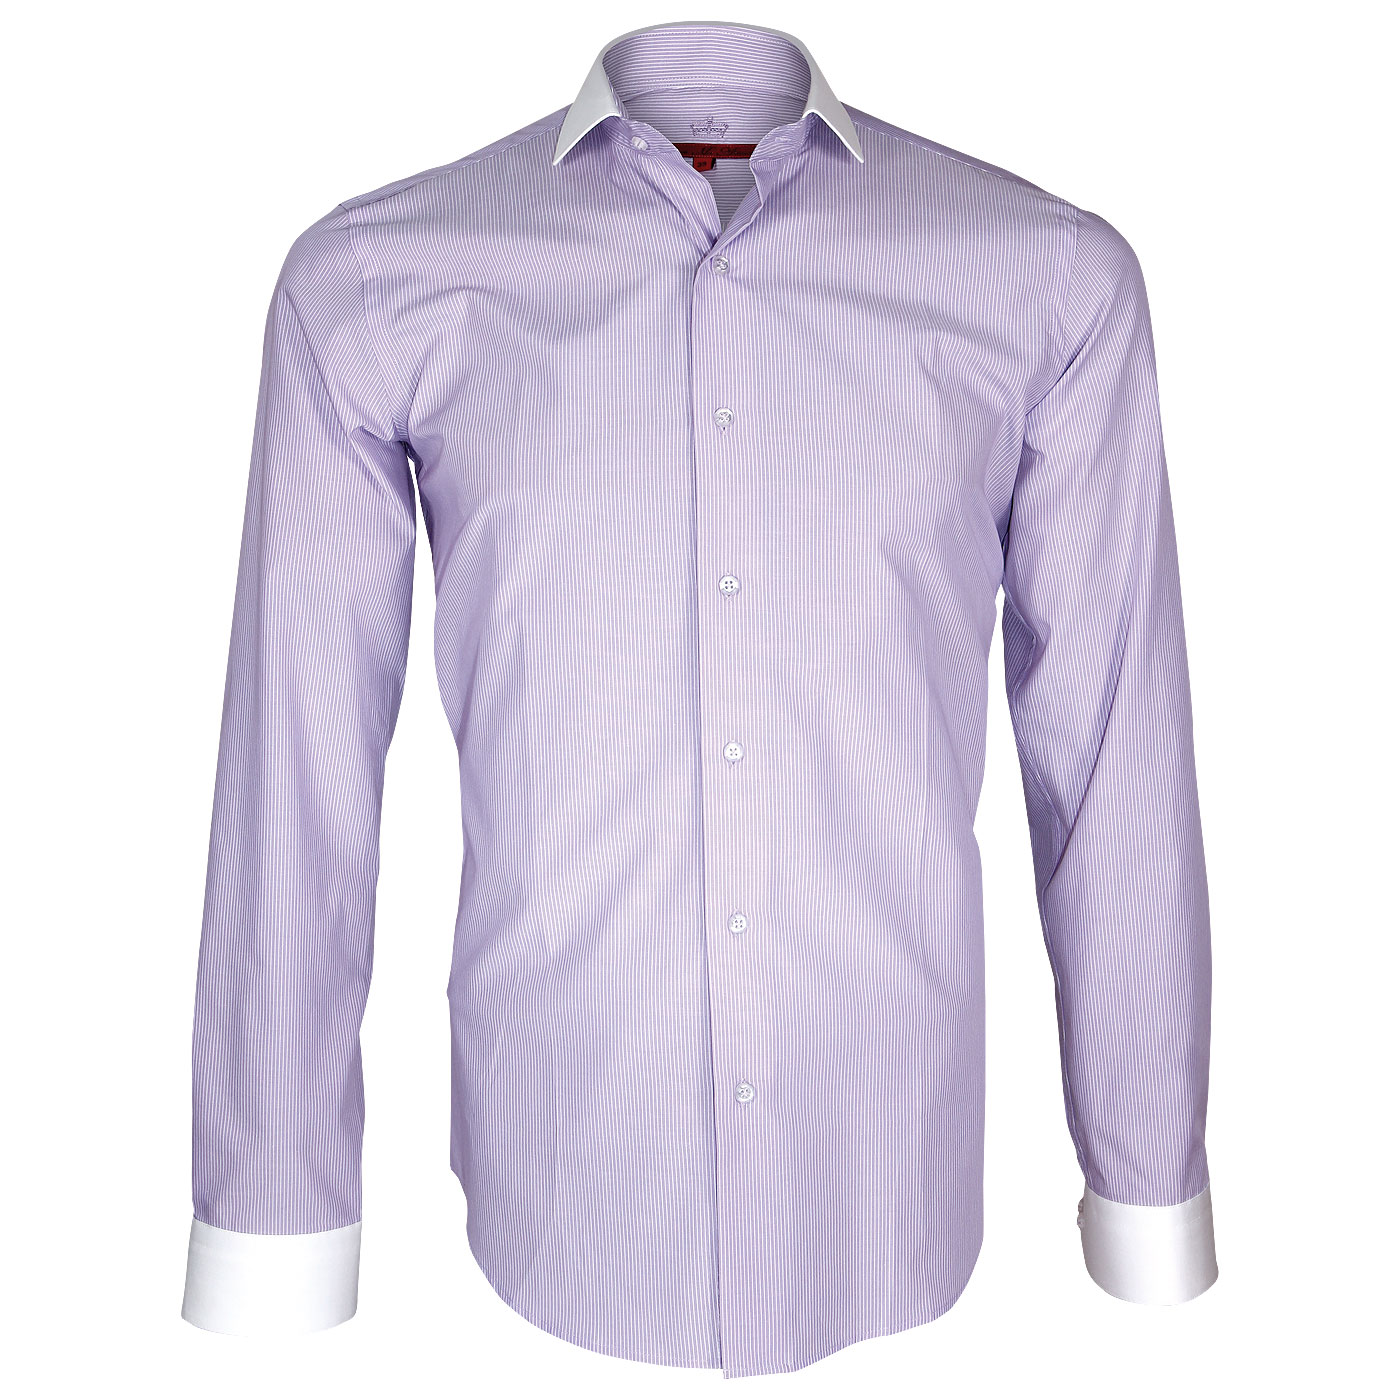 Ceremony French Cuffs Shirt